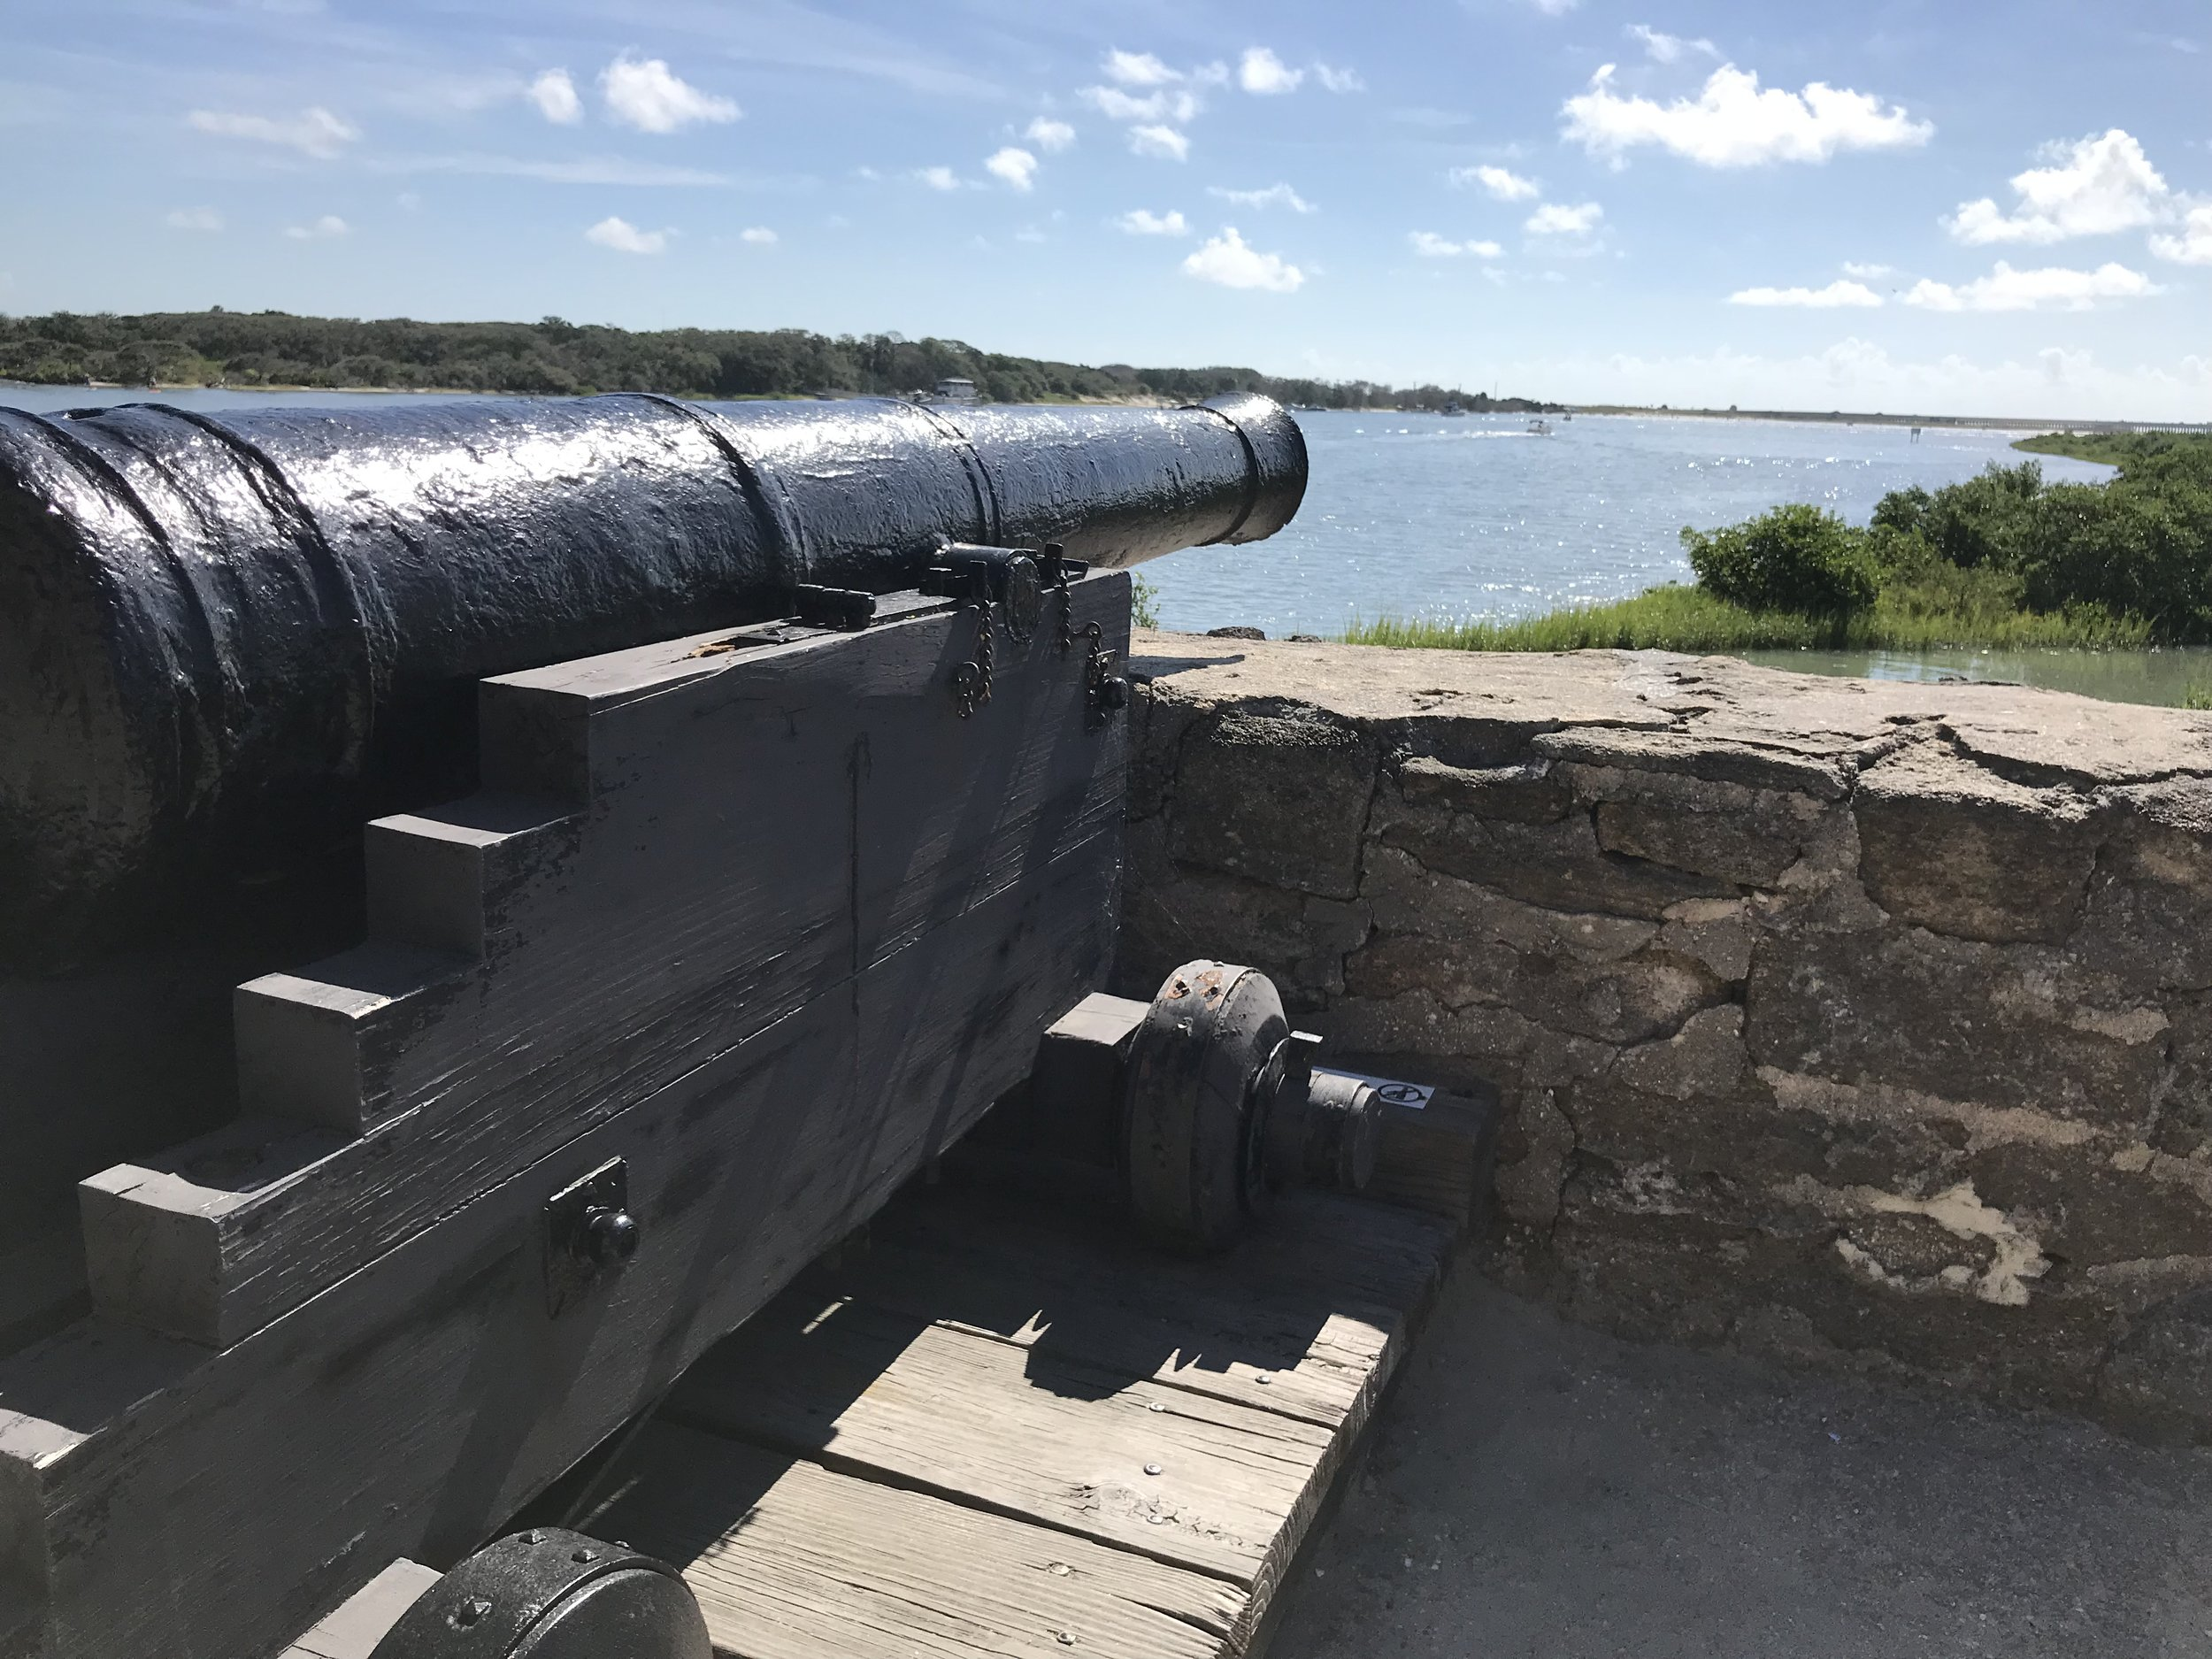 A view of the Matanzas Inlet with Spanish canon poised to take out any entering vessels. Photo by Jeff Mallinson.